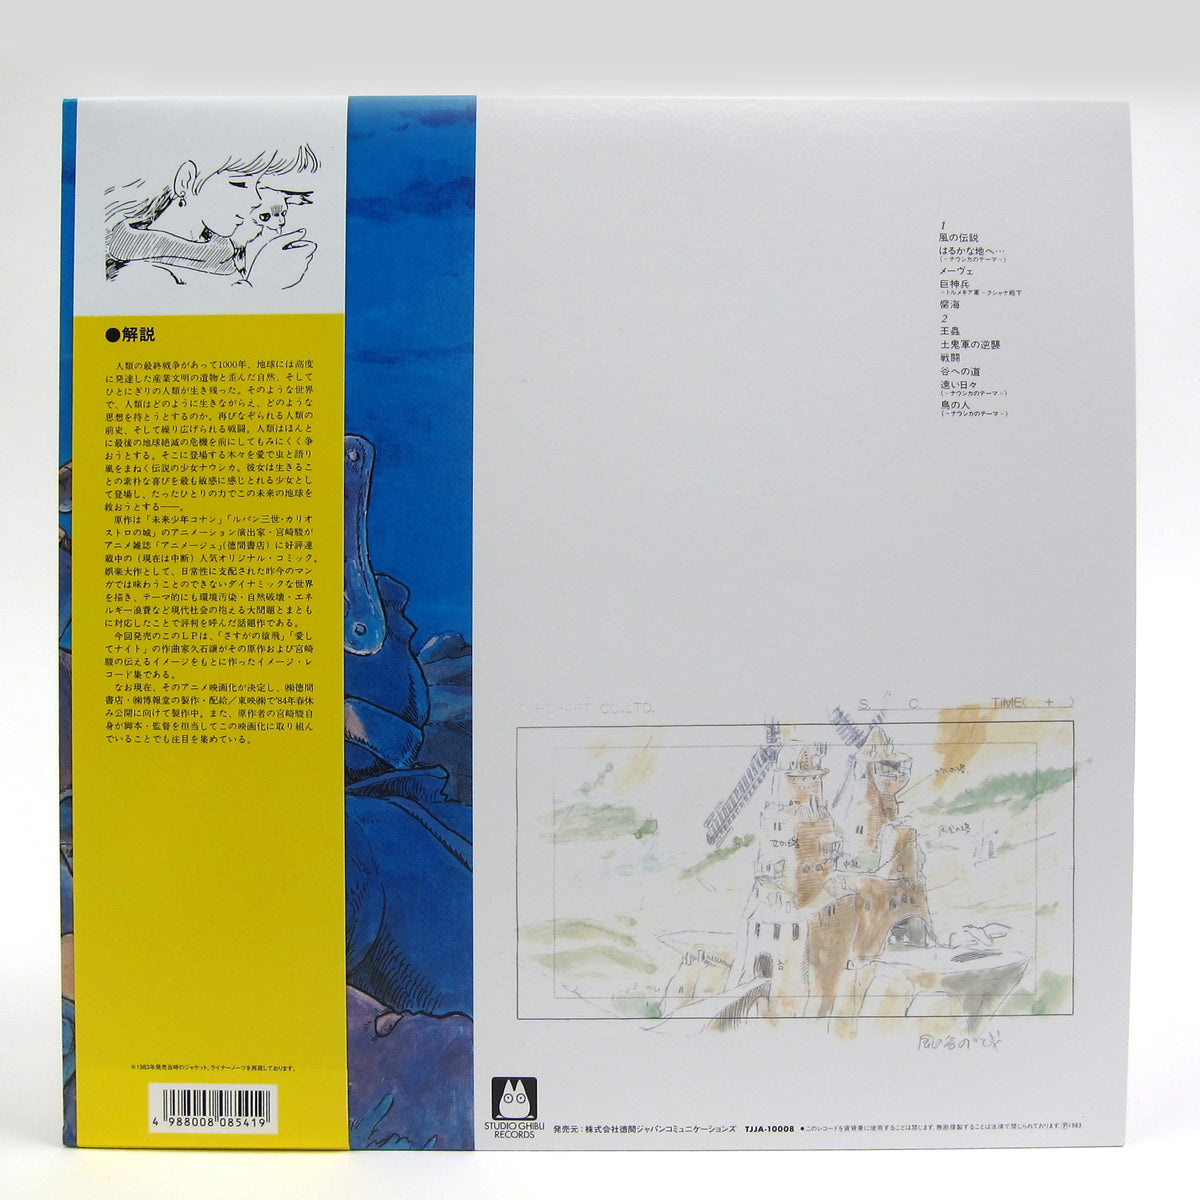 Joe Hisaishi: Nausicaa Of The Valley Of Wind - Image Album Vinyl LP